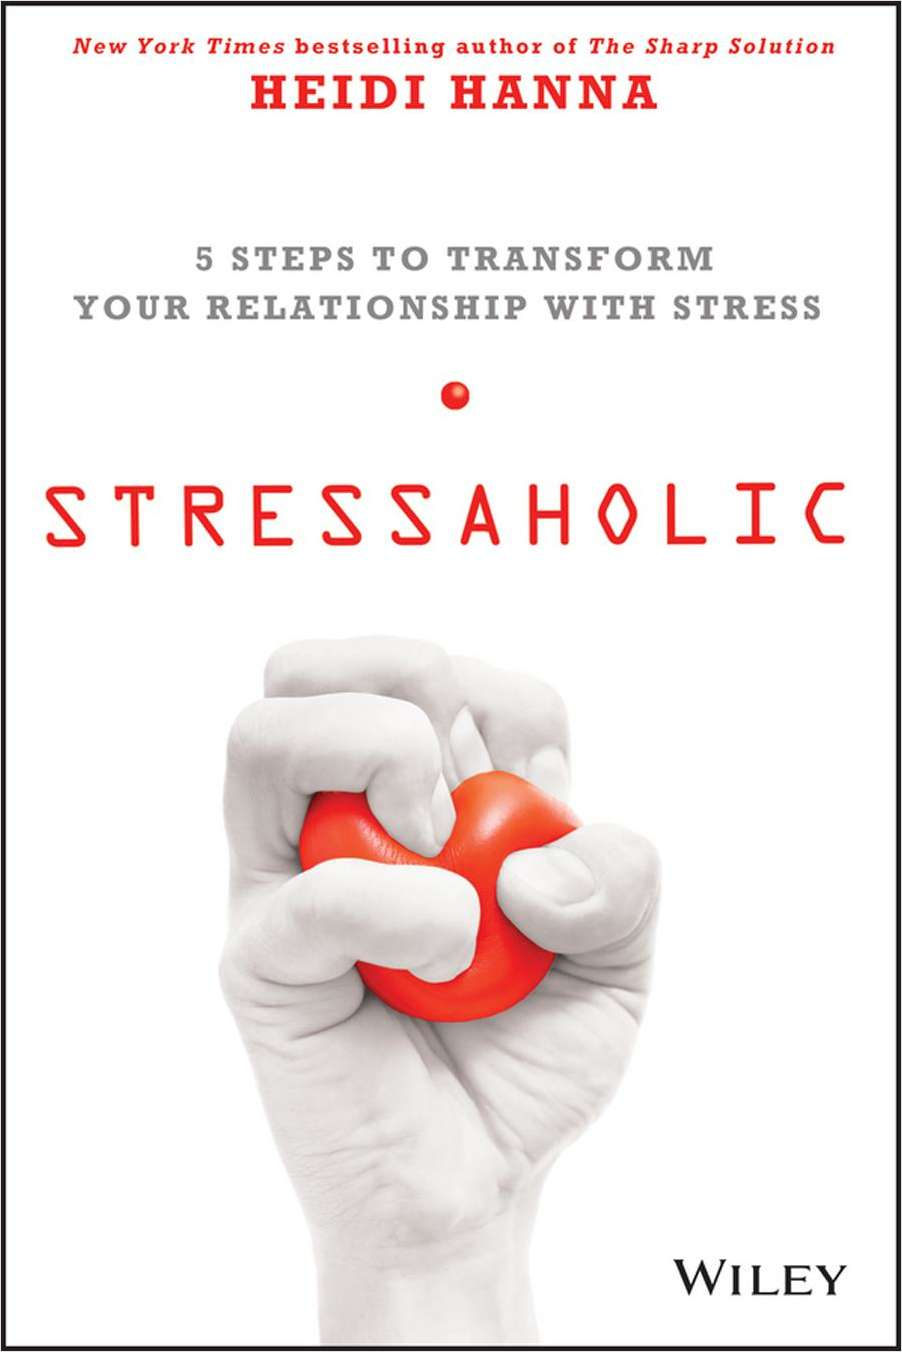 Stressaholic: 5 Steps to Transform Your Relationship with Stress--Free Sample Chapter